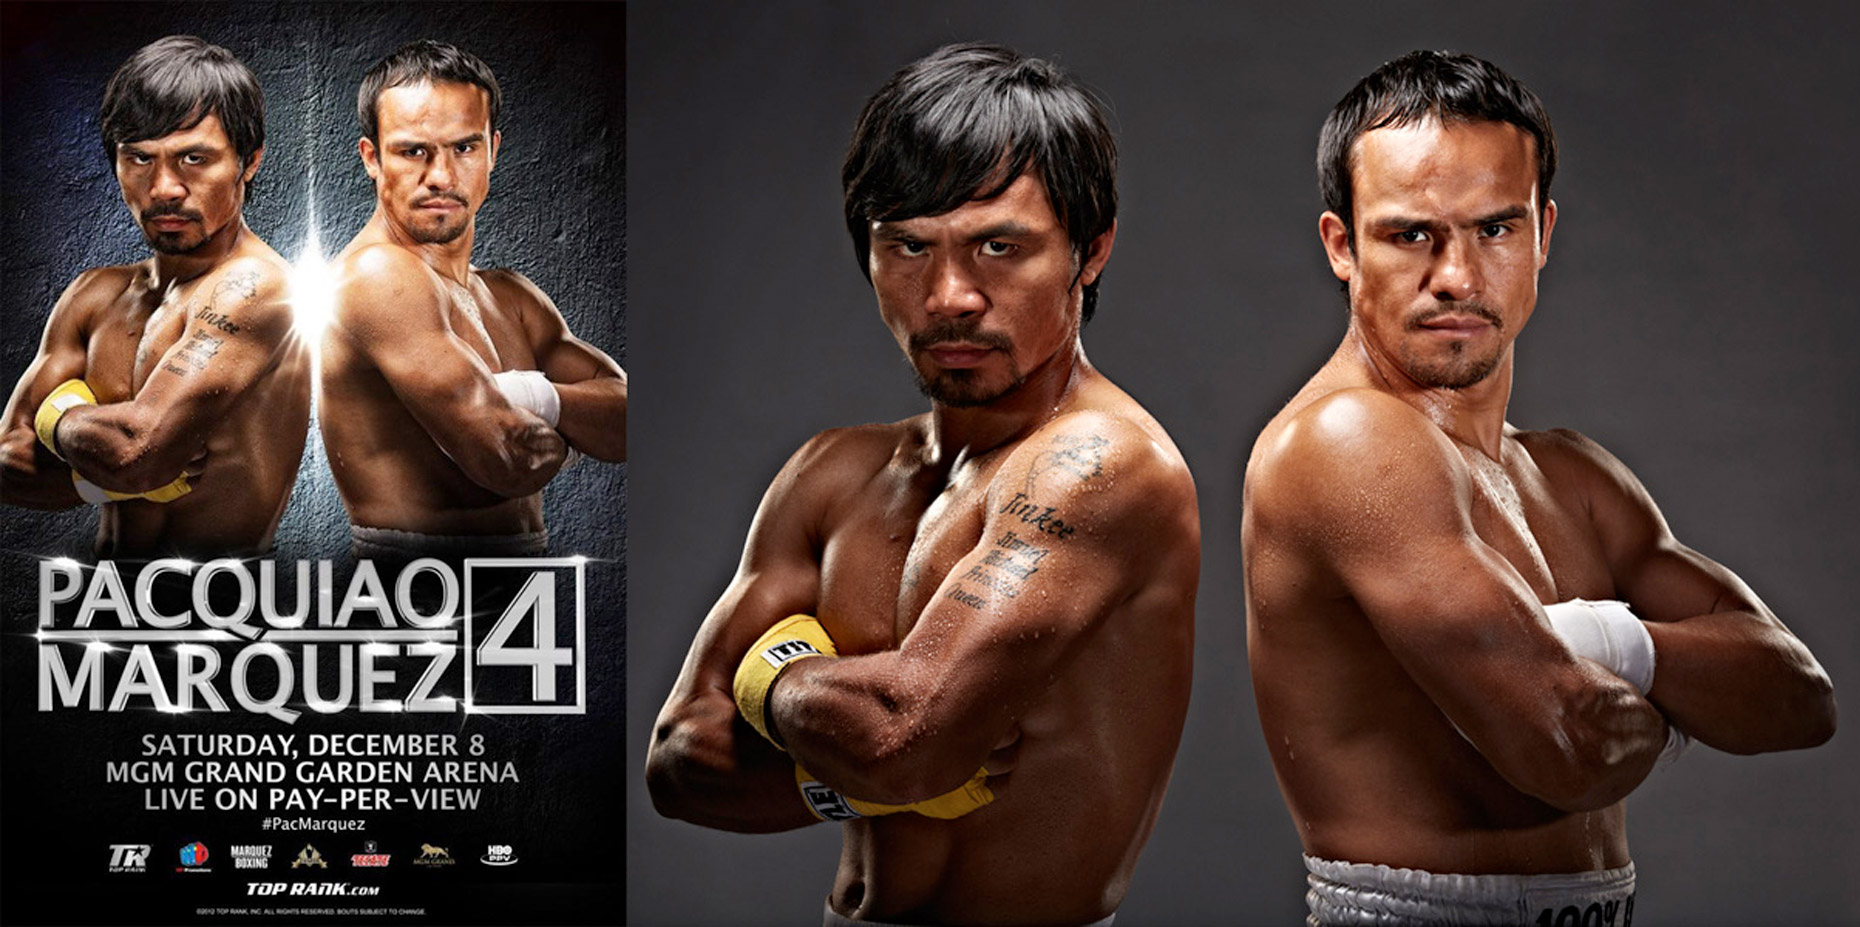 Pacquiao vs Marquez 4 fight poster photo by Monte Isom